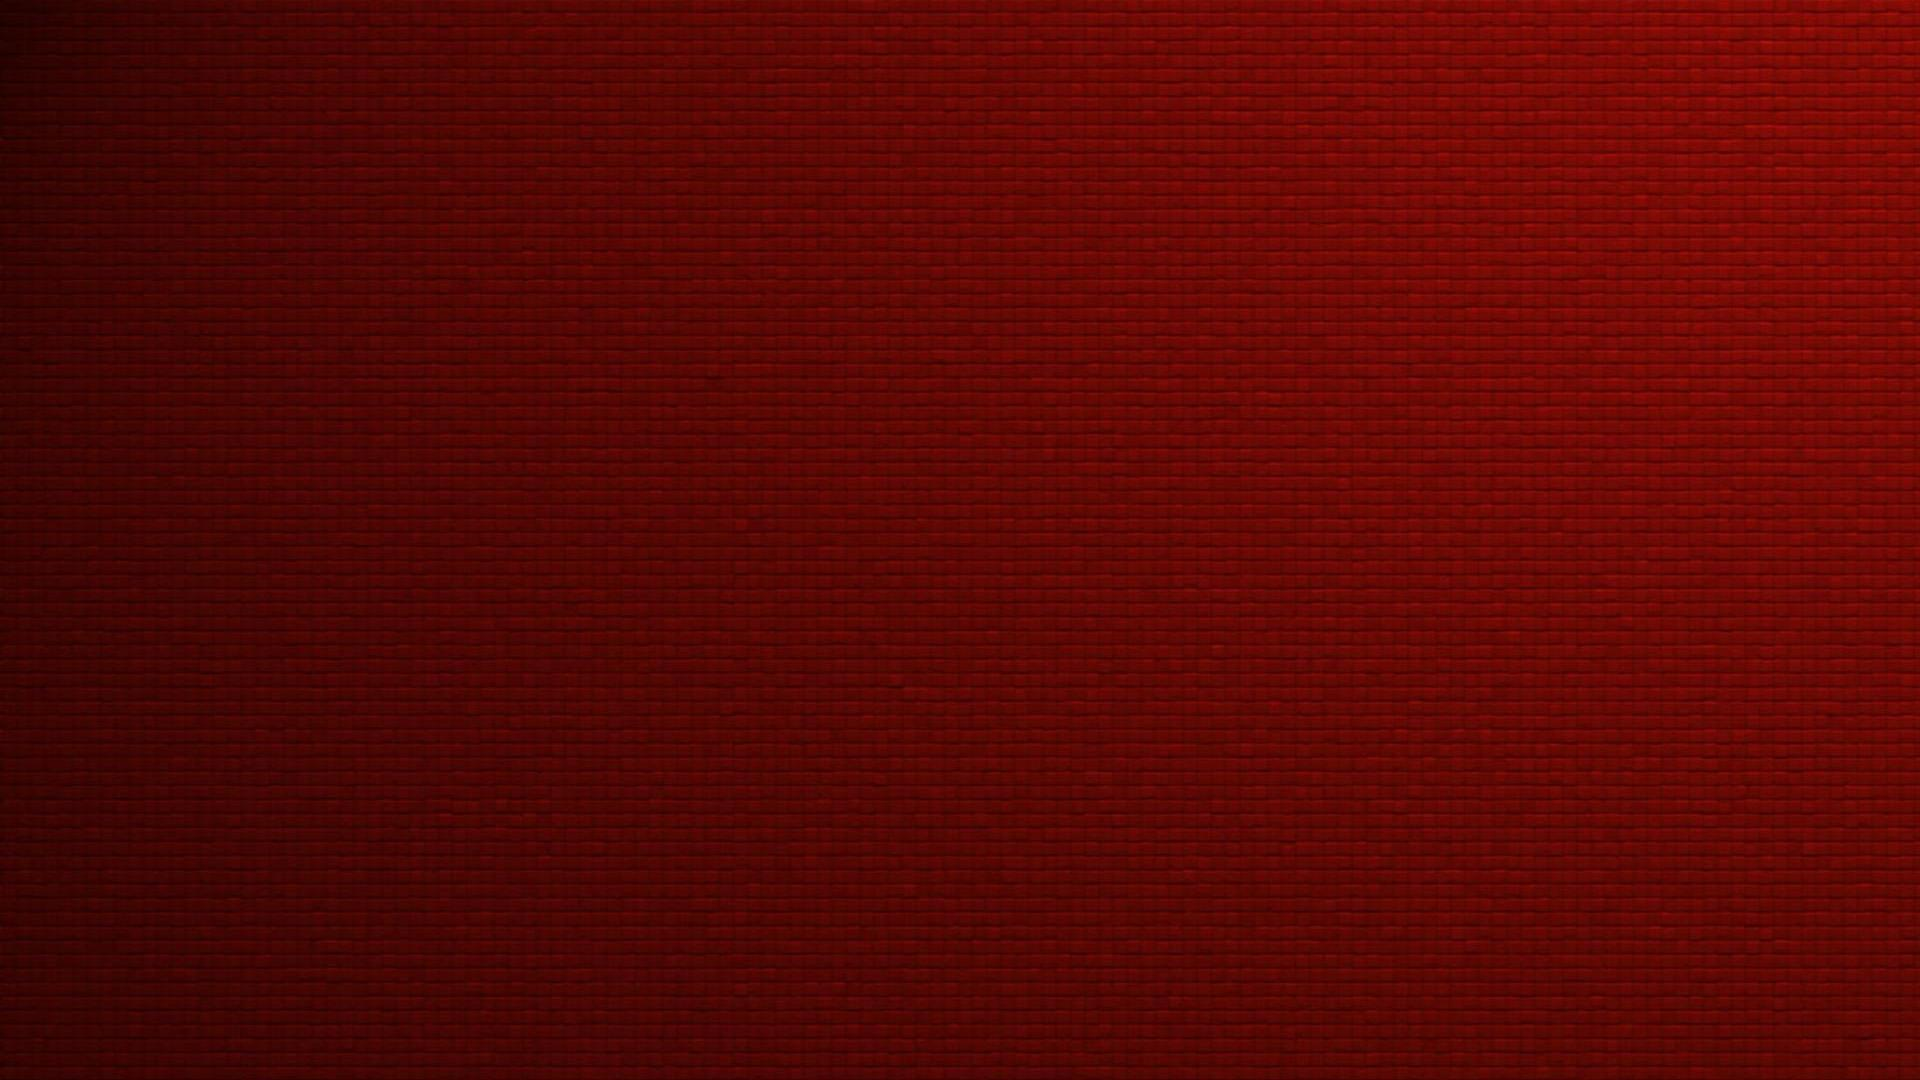 1920x1080 Red Desktop Wallpaper Abstract Red Wallpaper 1920x1080